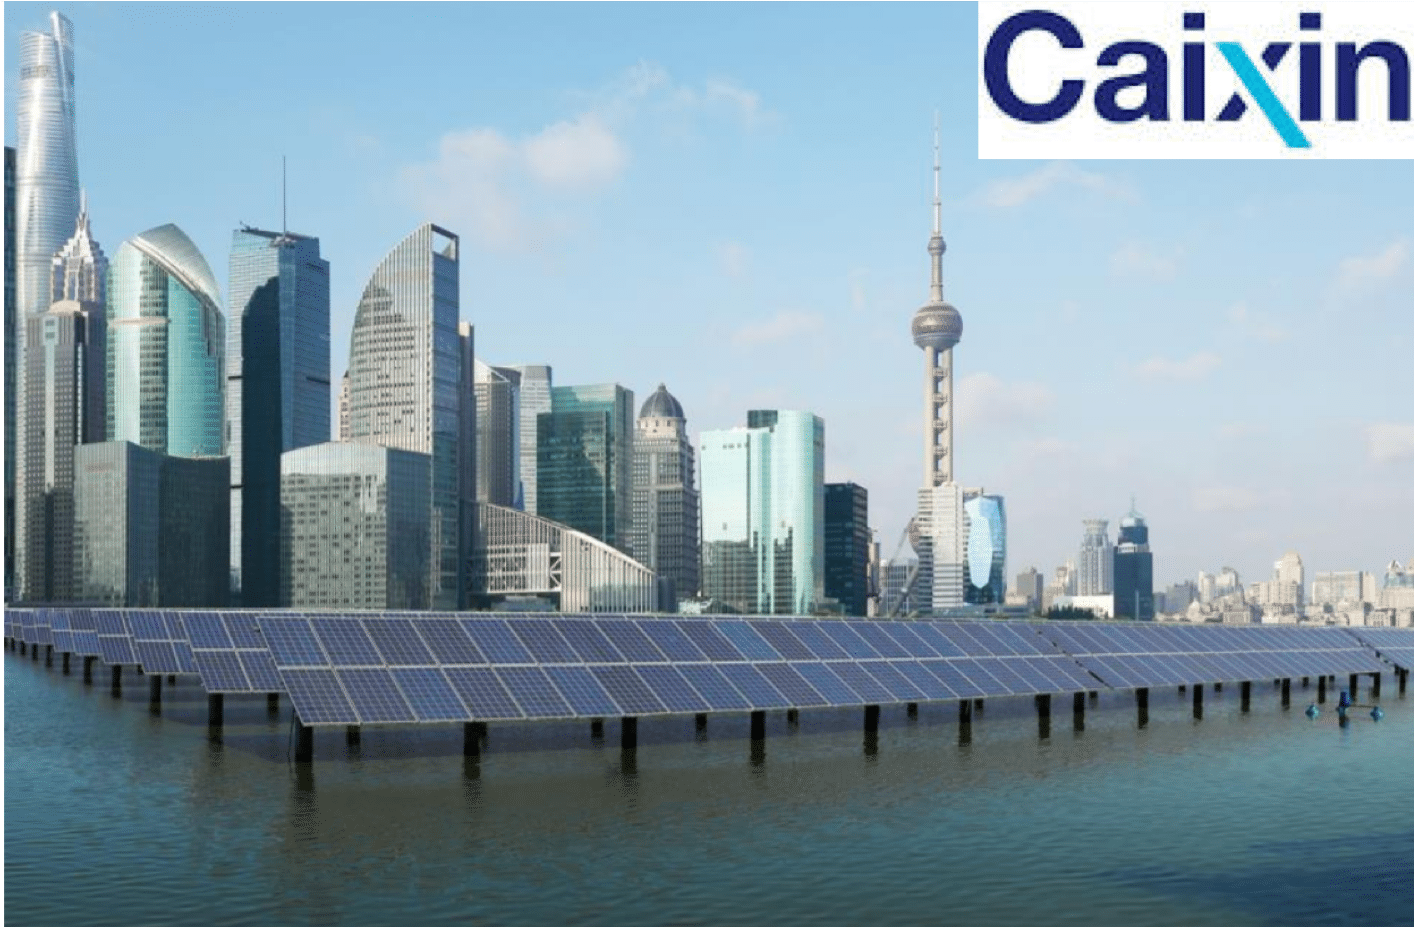 Can China take the Lead in Sustainability